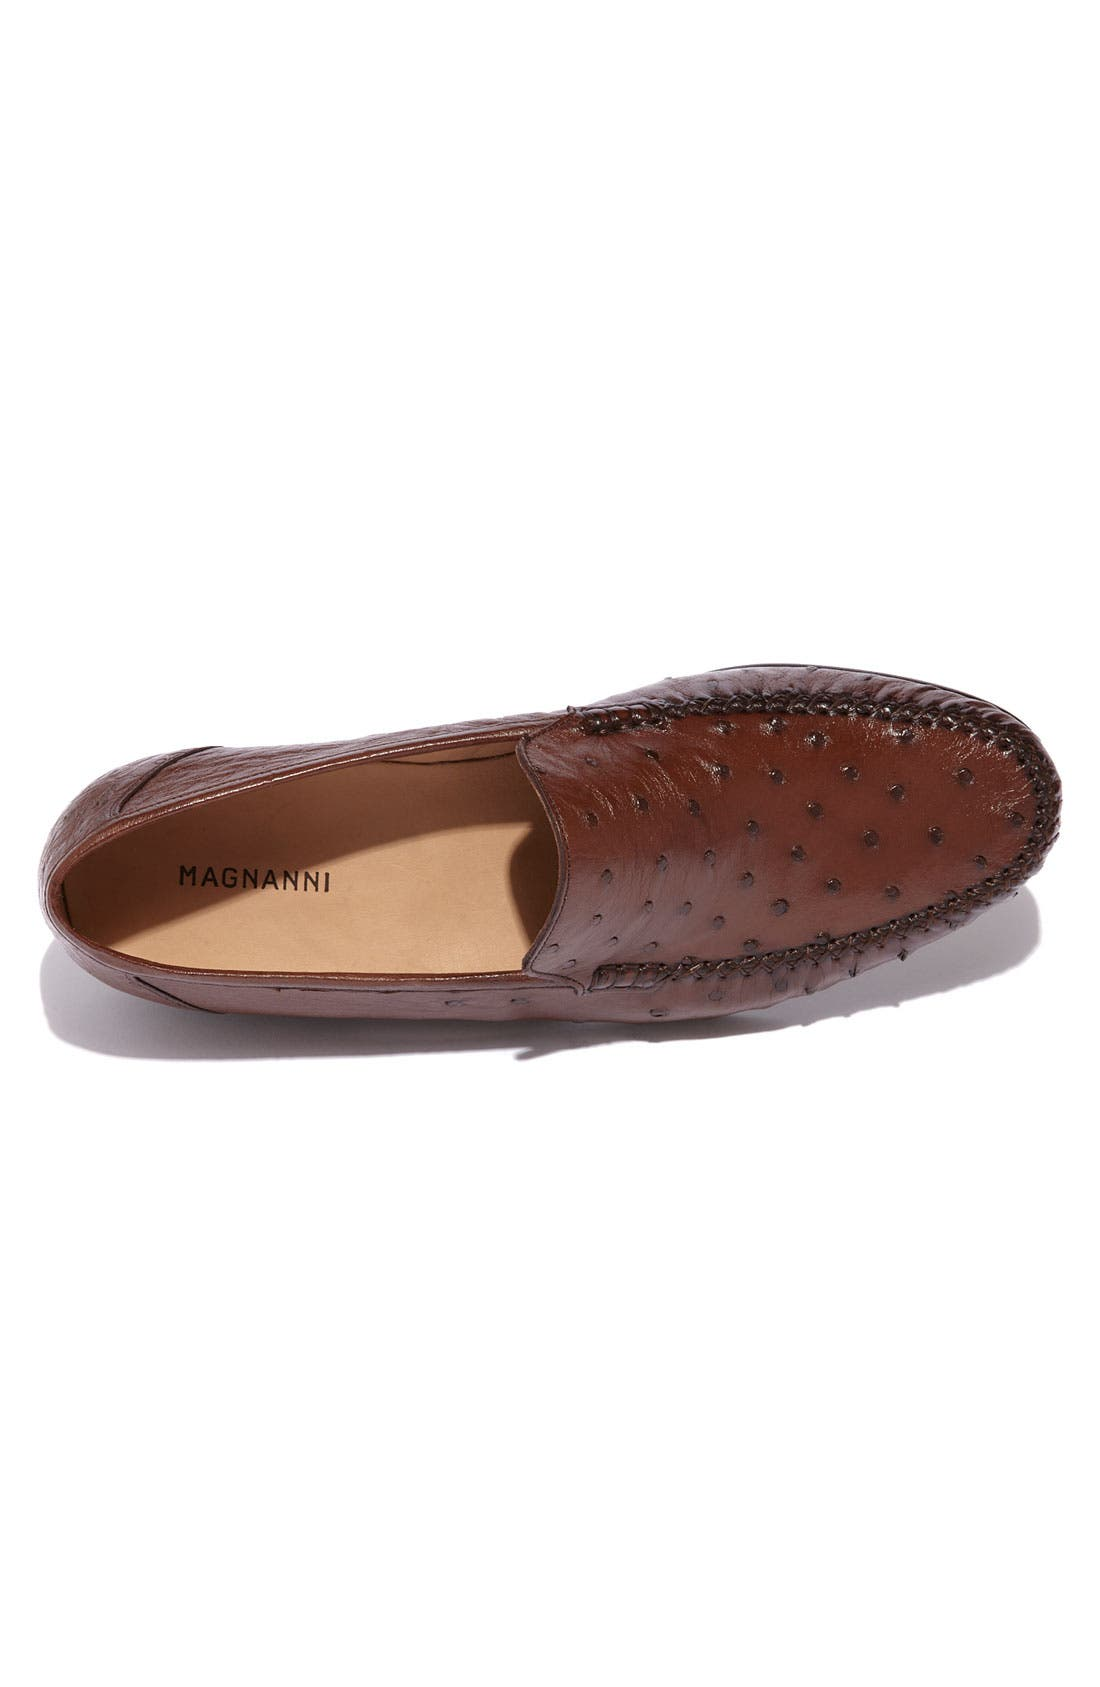 Alternate Image 3  - Magnanni 'Solea' Ostrich Loafer